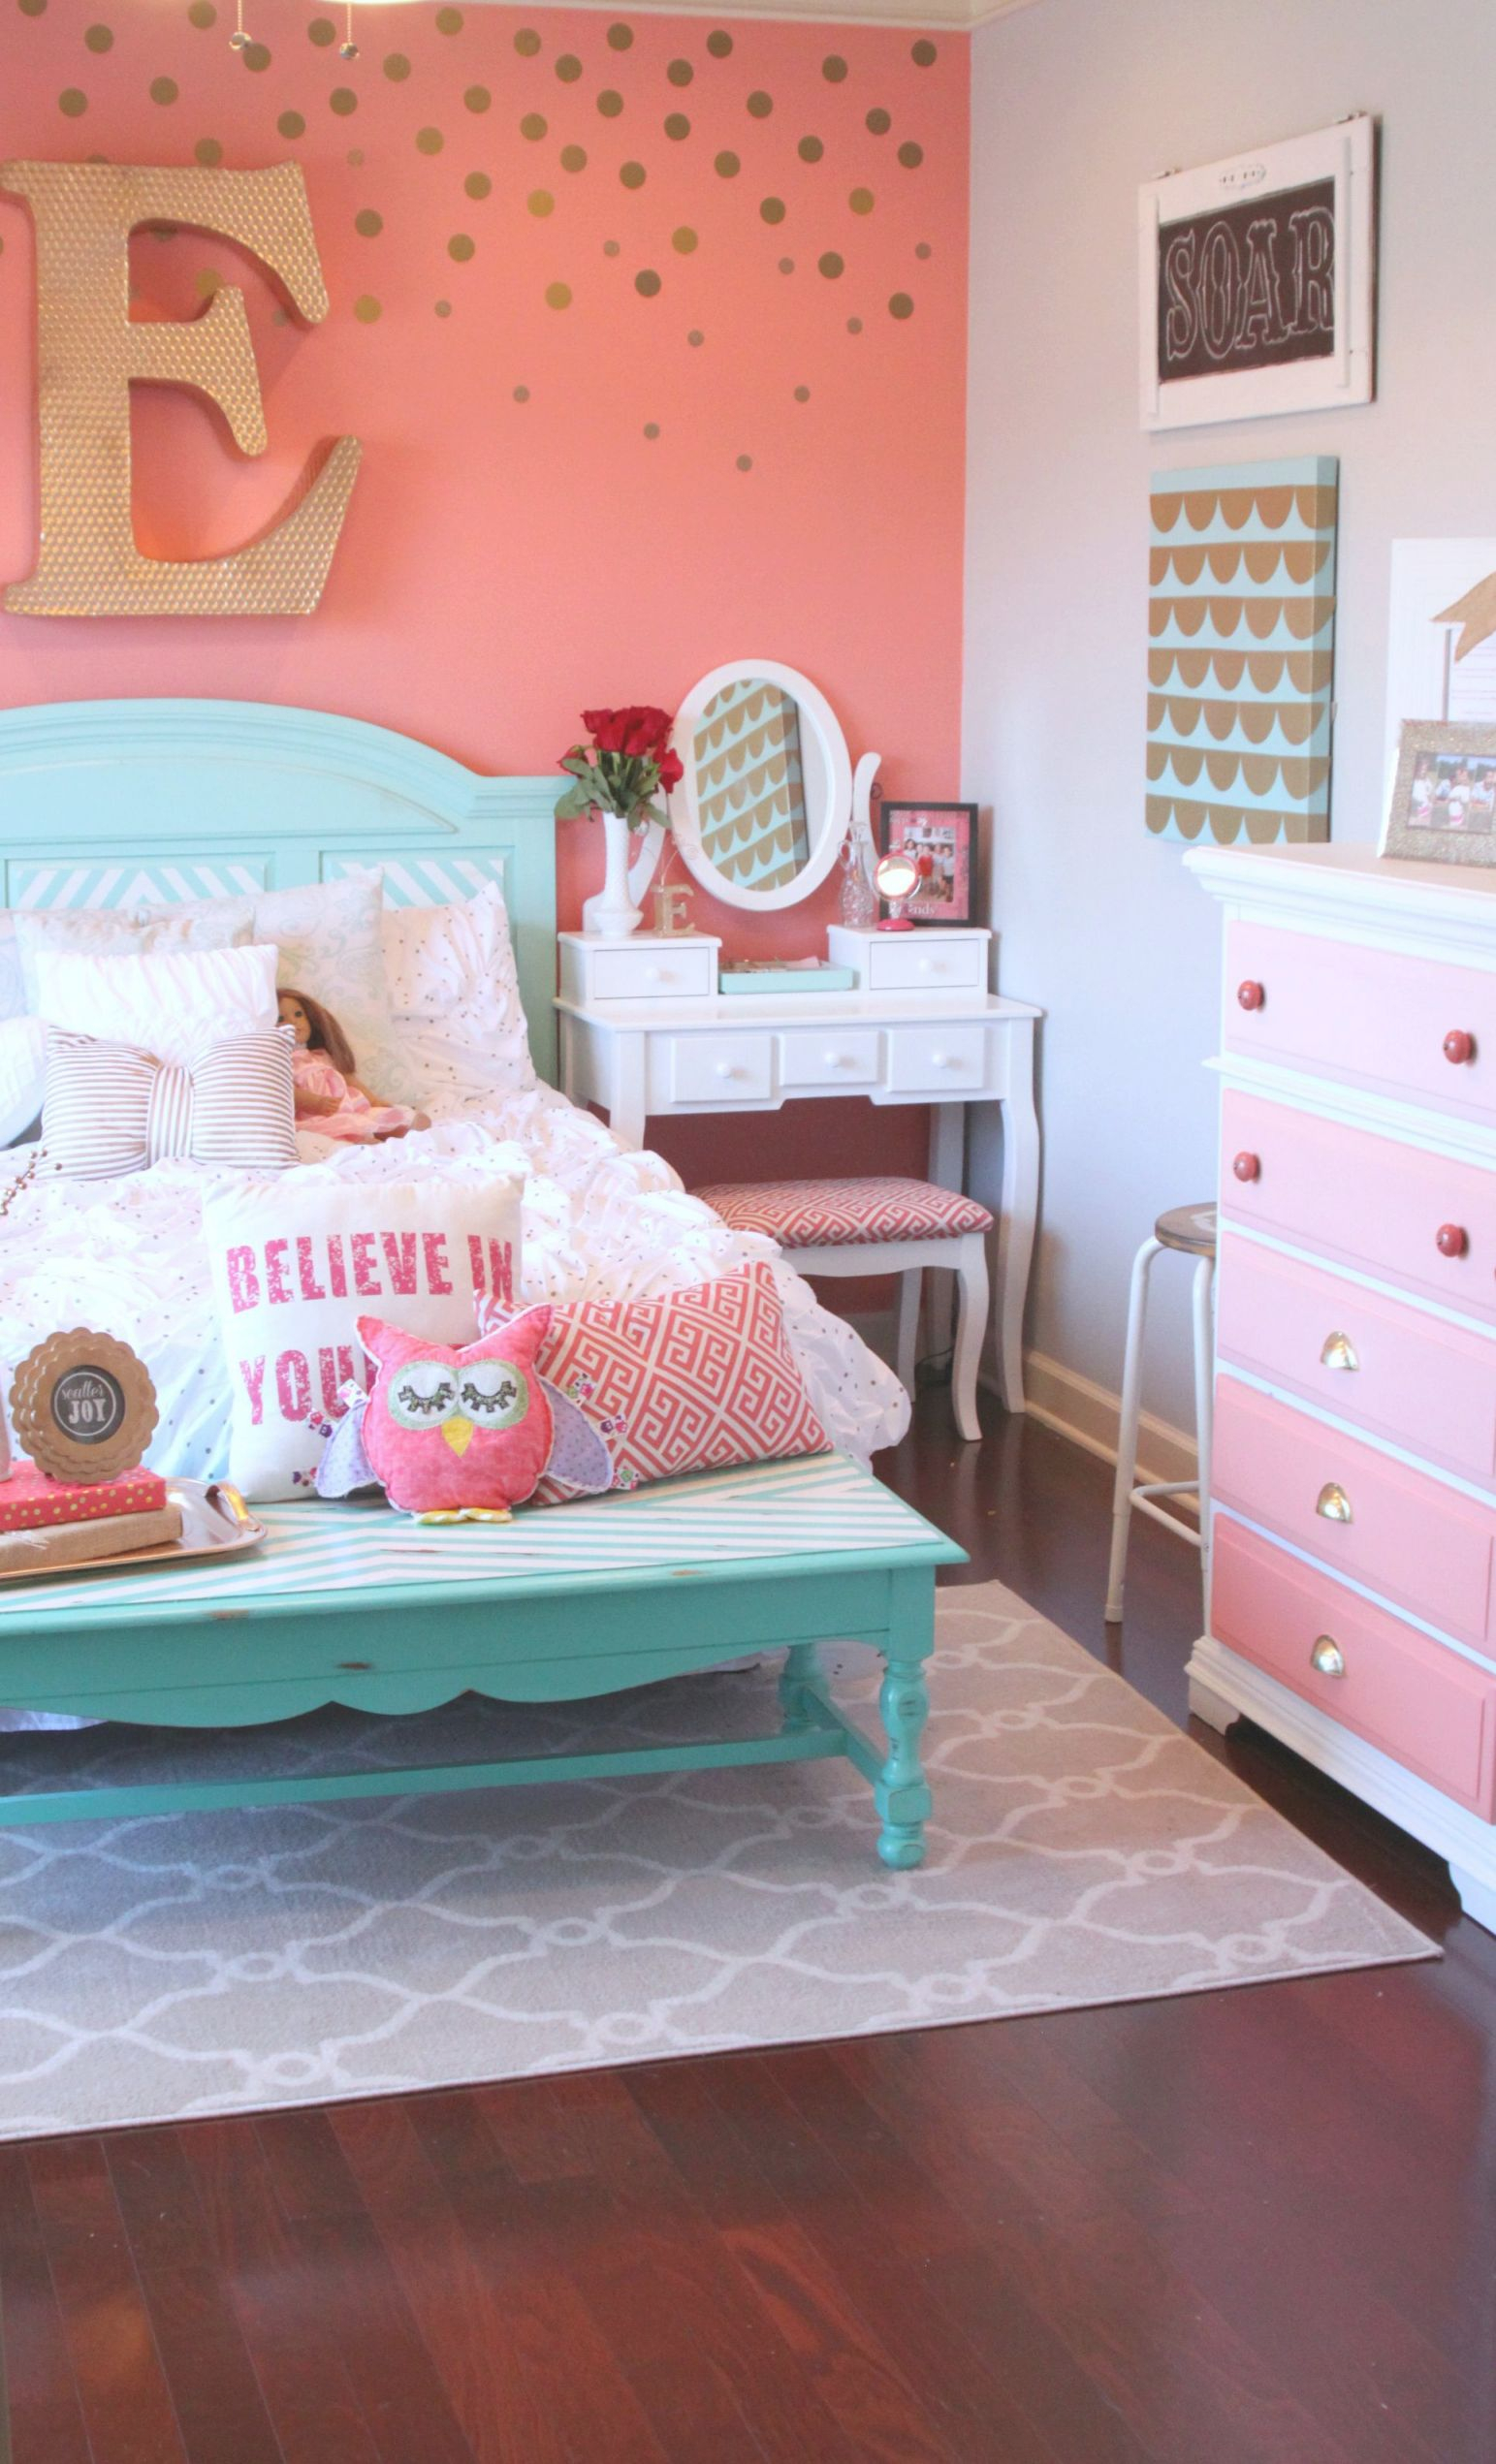 15 Girls' Room Ideas — Baby, Toddler & Tween Girl Bedroom within Beautiful Bedroom Decorating Ideas For Girls